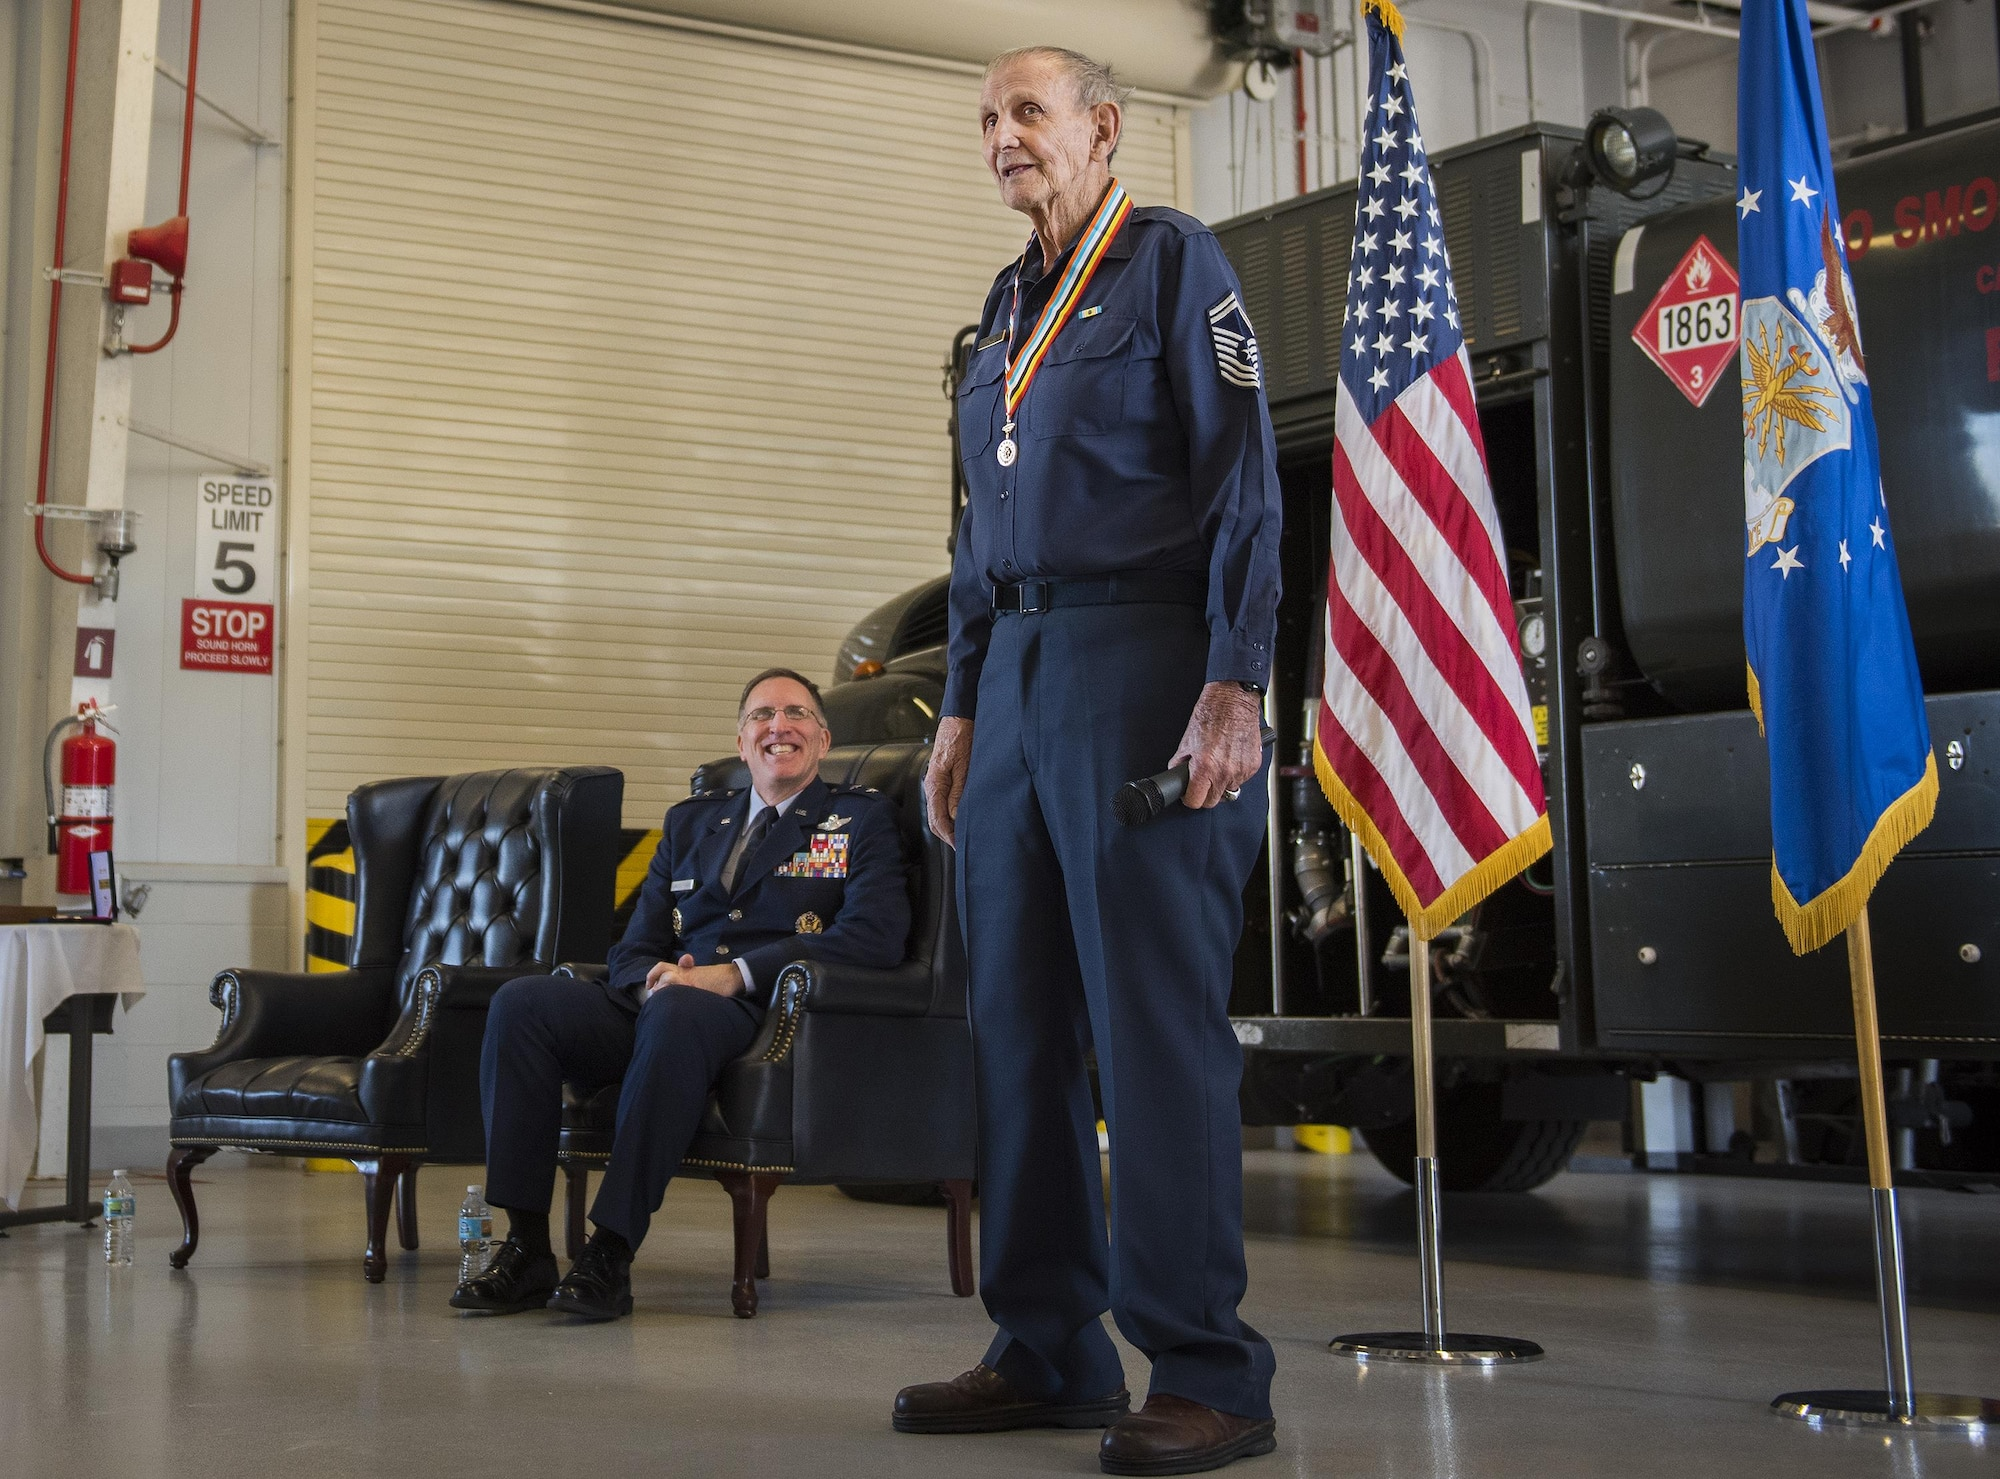 Retired Chief Master Sgt. Russell Rhodes speaks to the audience after receiving the Korean Ambassador for Peace Medal at Eglin Air Force Base, Fla., Nov. 15, 2016. The 85-year-old Rhodes requested the medal ceremony be held at the base's fuels flight, where Rhodes was stationed during his Air Force career as a fuel truck driver. (U.S. Air Force photo/Samuel King Jr.)